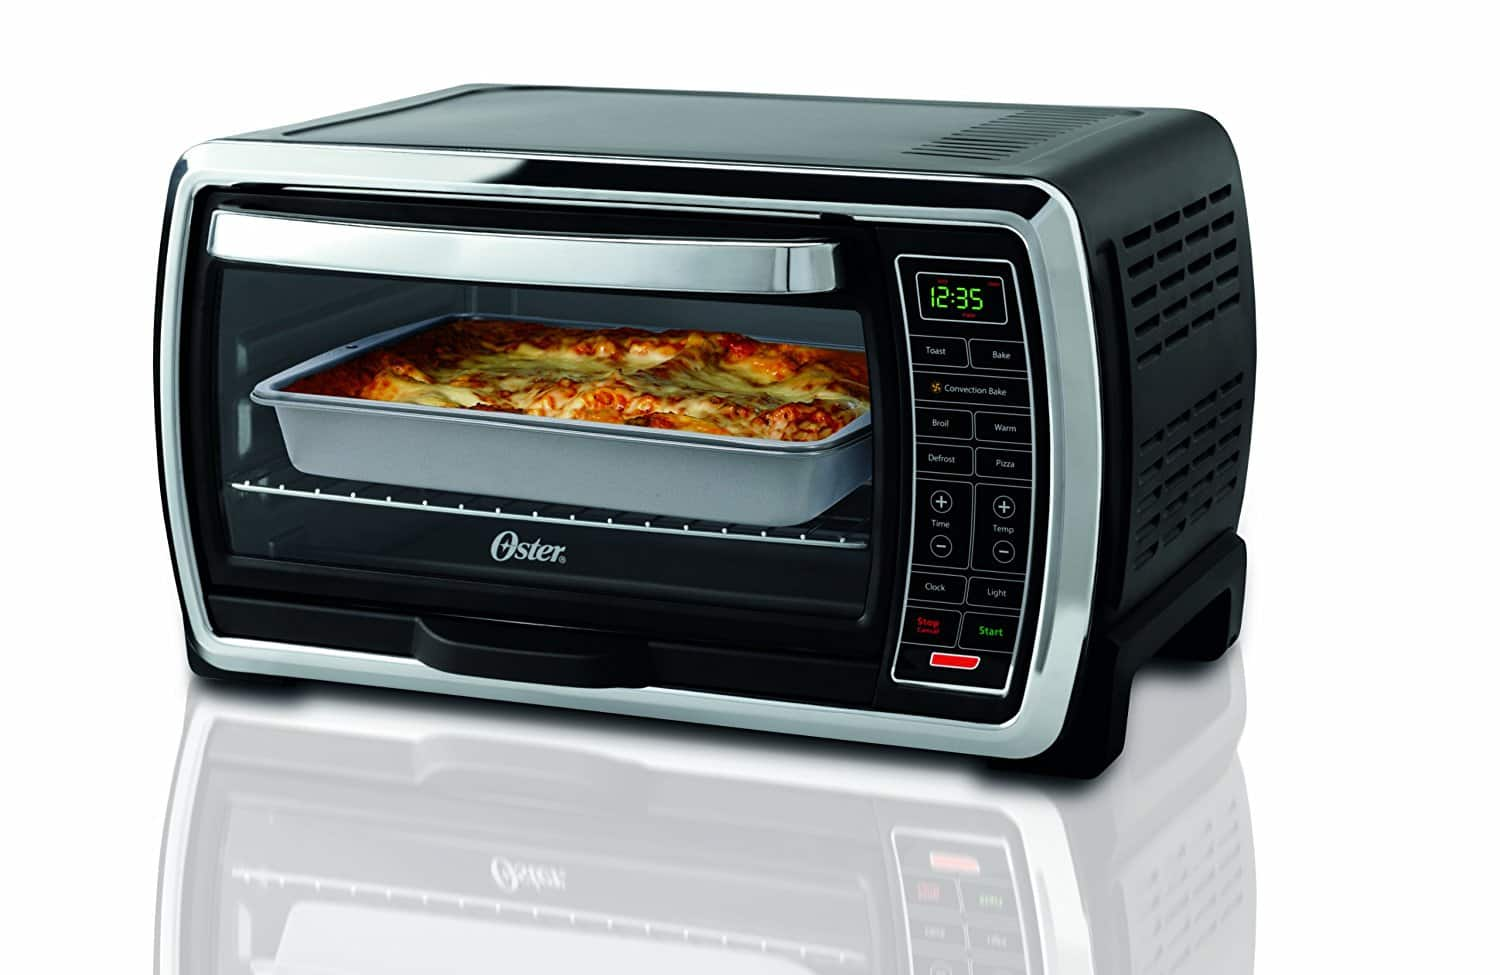 $55.99 Oster Large Capacity Countertop 6-Slice Digital Convection Toaster Oven, Black/Polished Stainless, TSSTTVMNDG